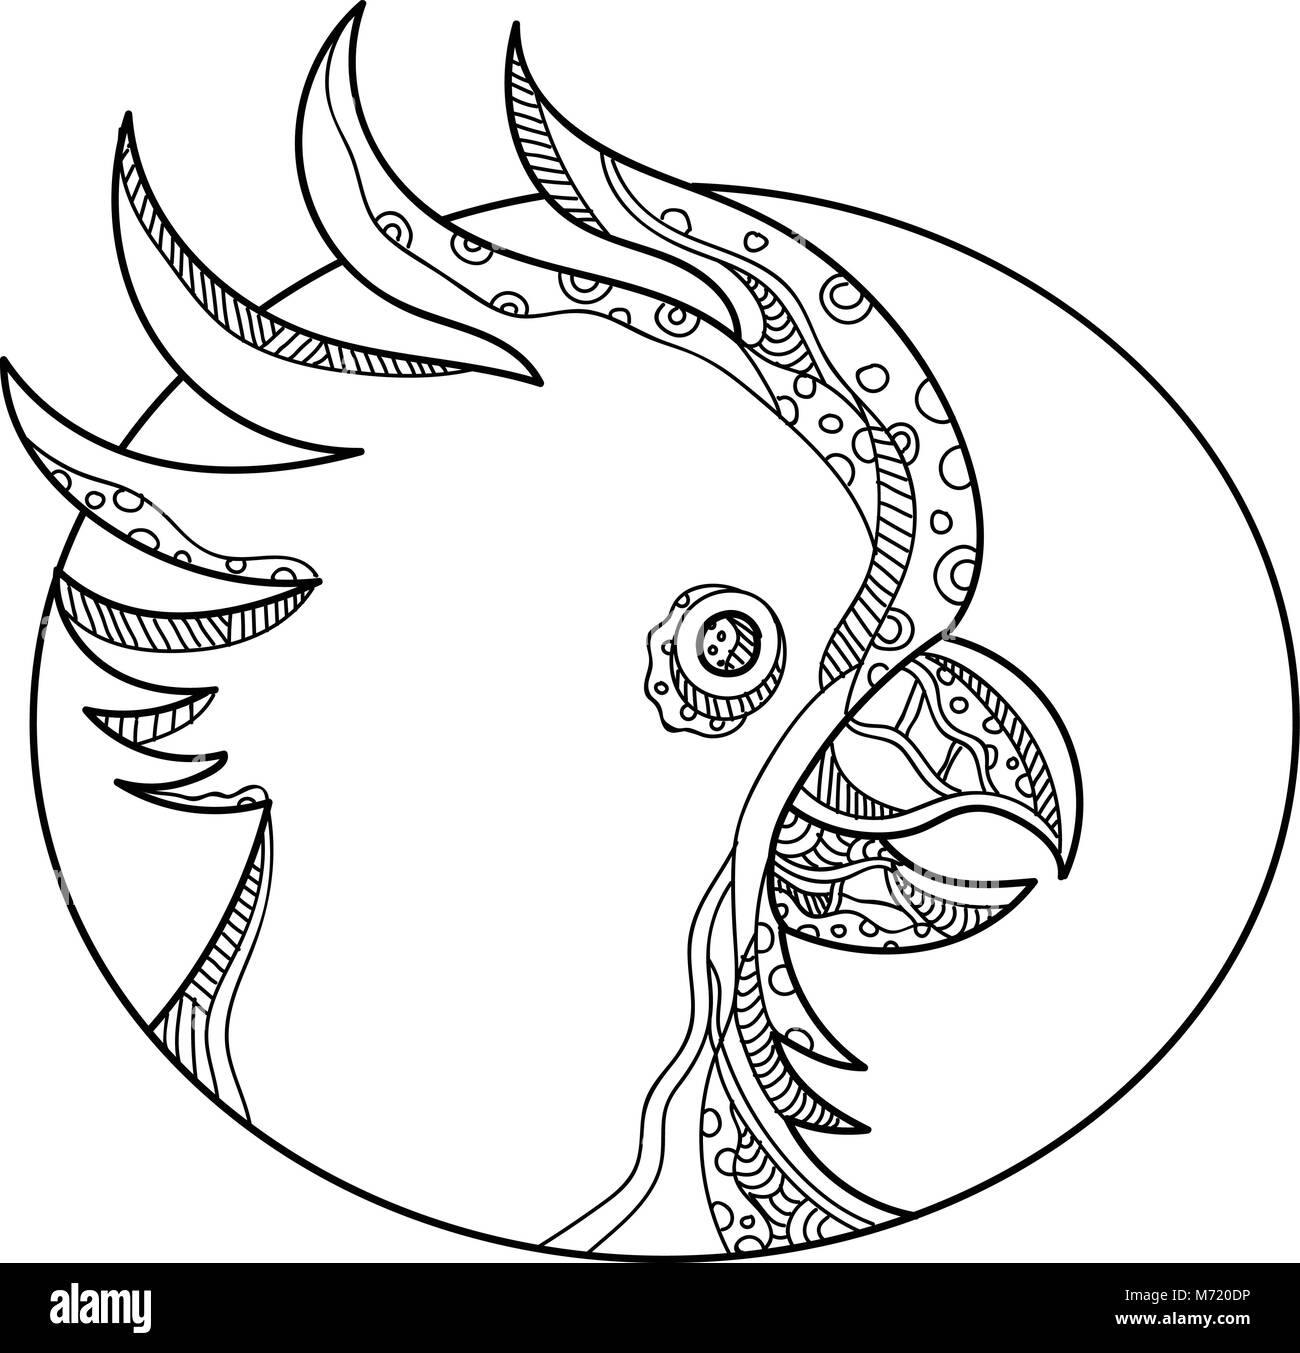 Doodle art illustration of head of cockatoo, a parrot that belongs to the bird family Cacatuidae, in black and white - Stock Vector